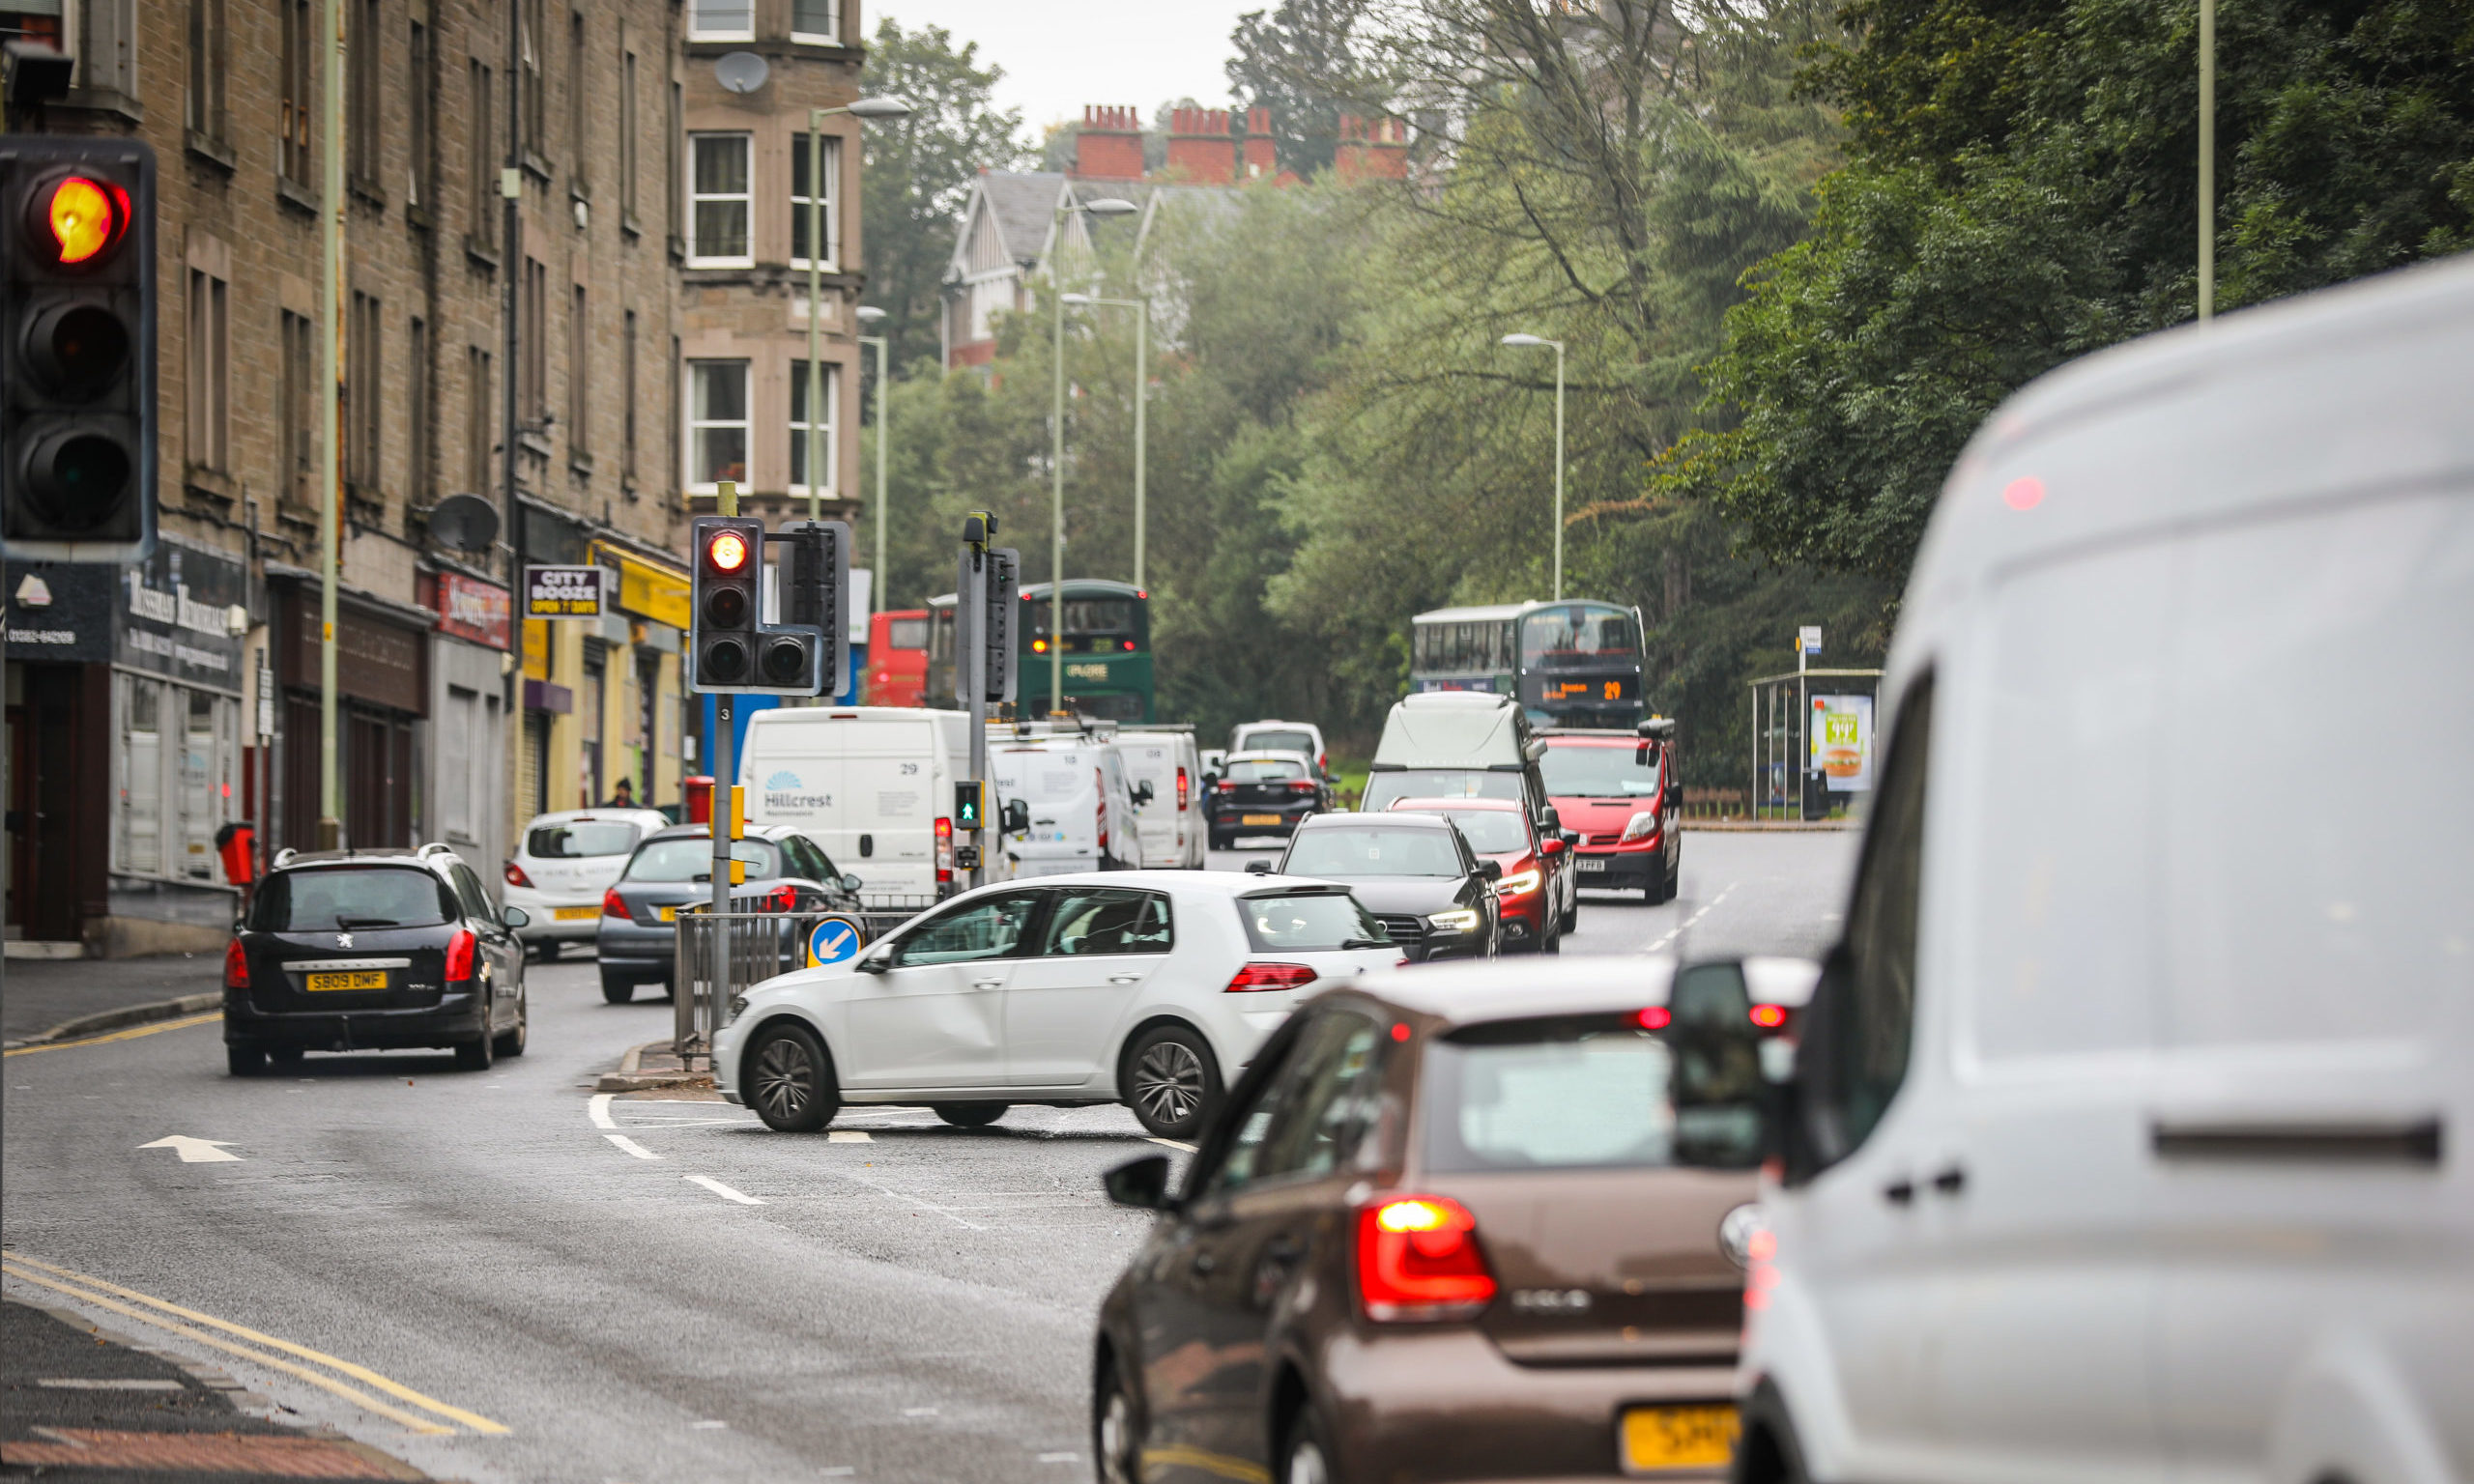 Lochee Road in Dundee is one of Scotland's most polluted streets